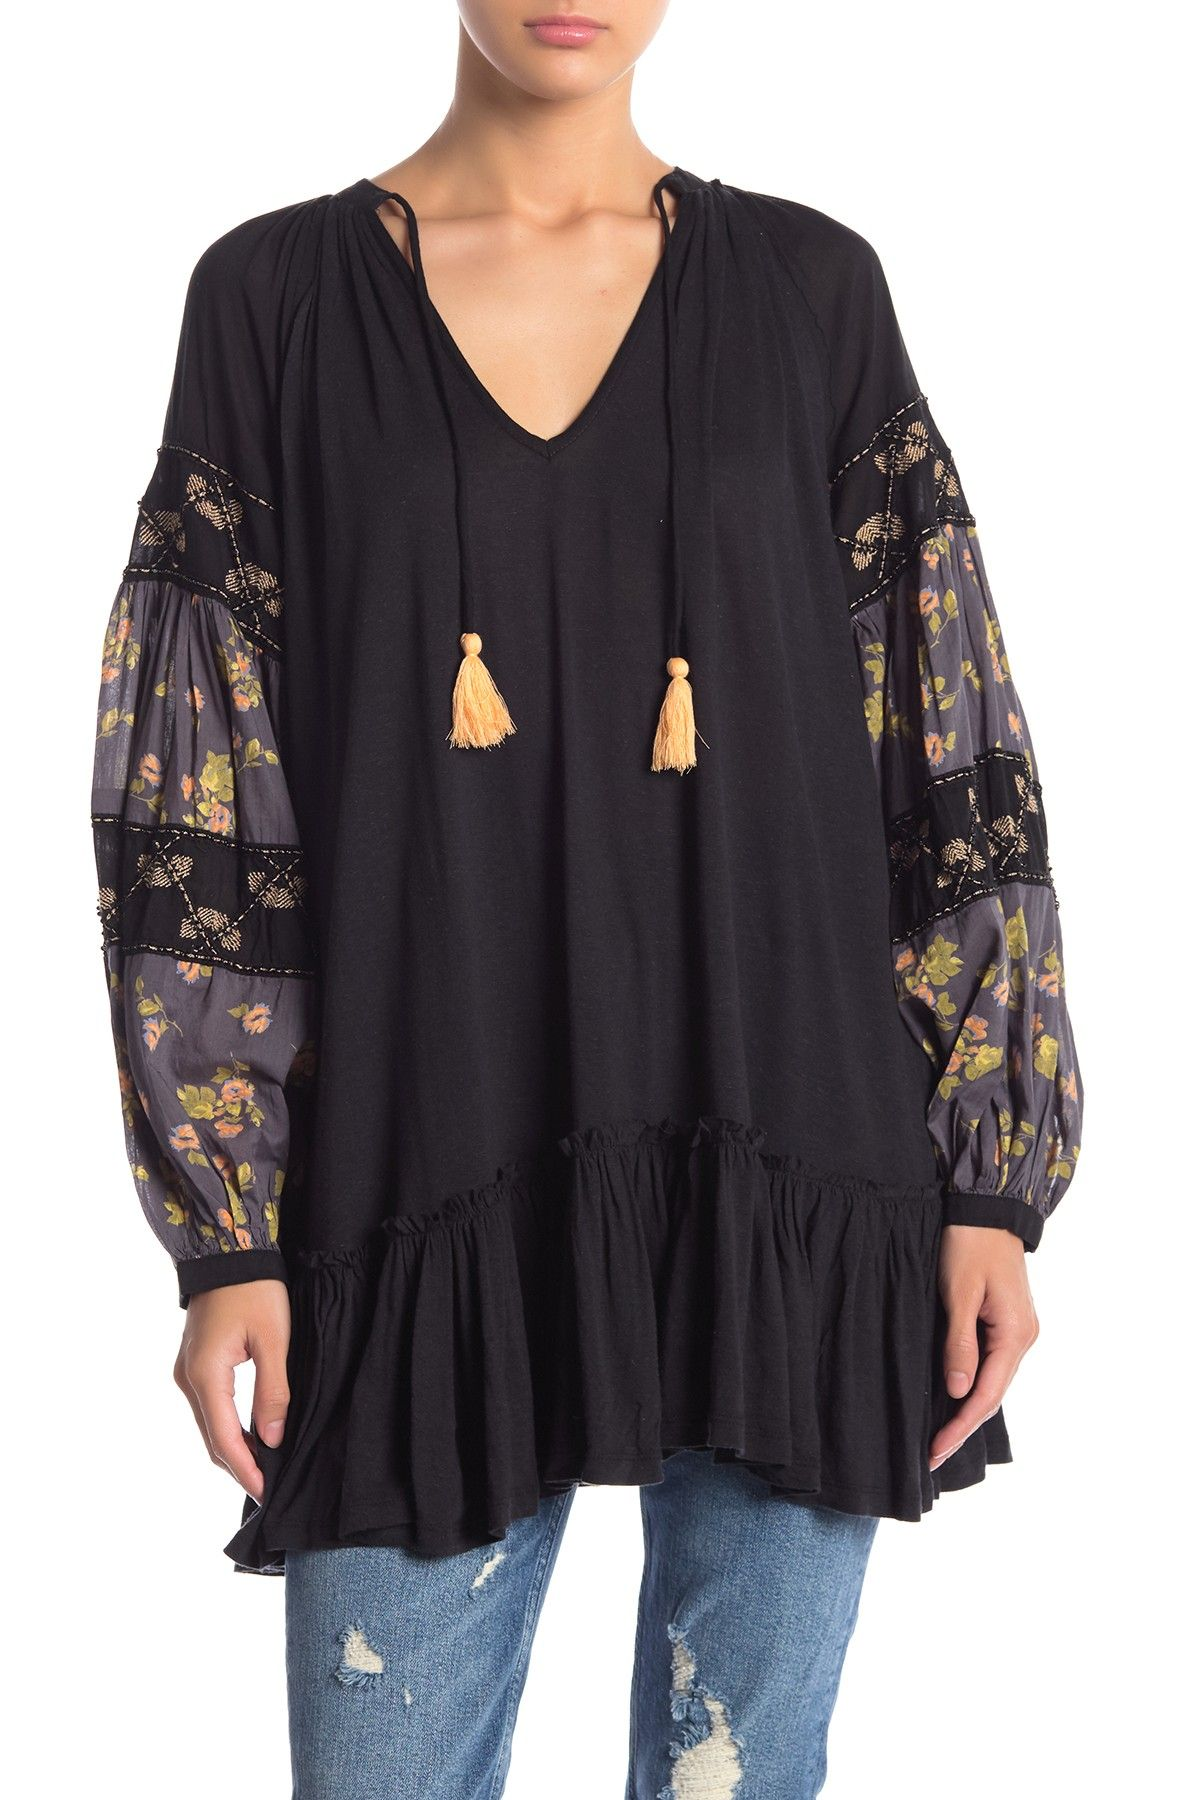 Free People | Mix It Up Tunic #nordstromrack